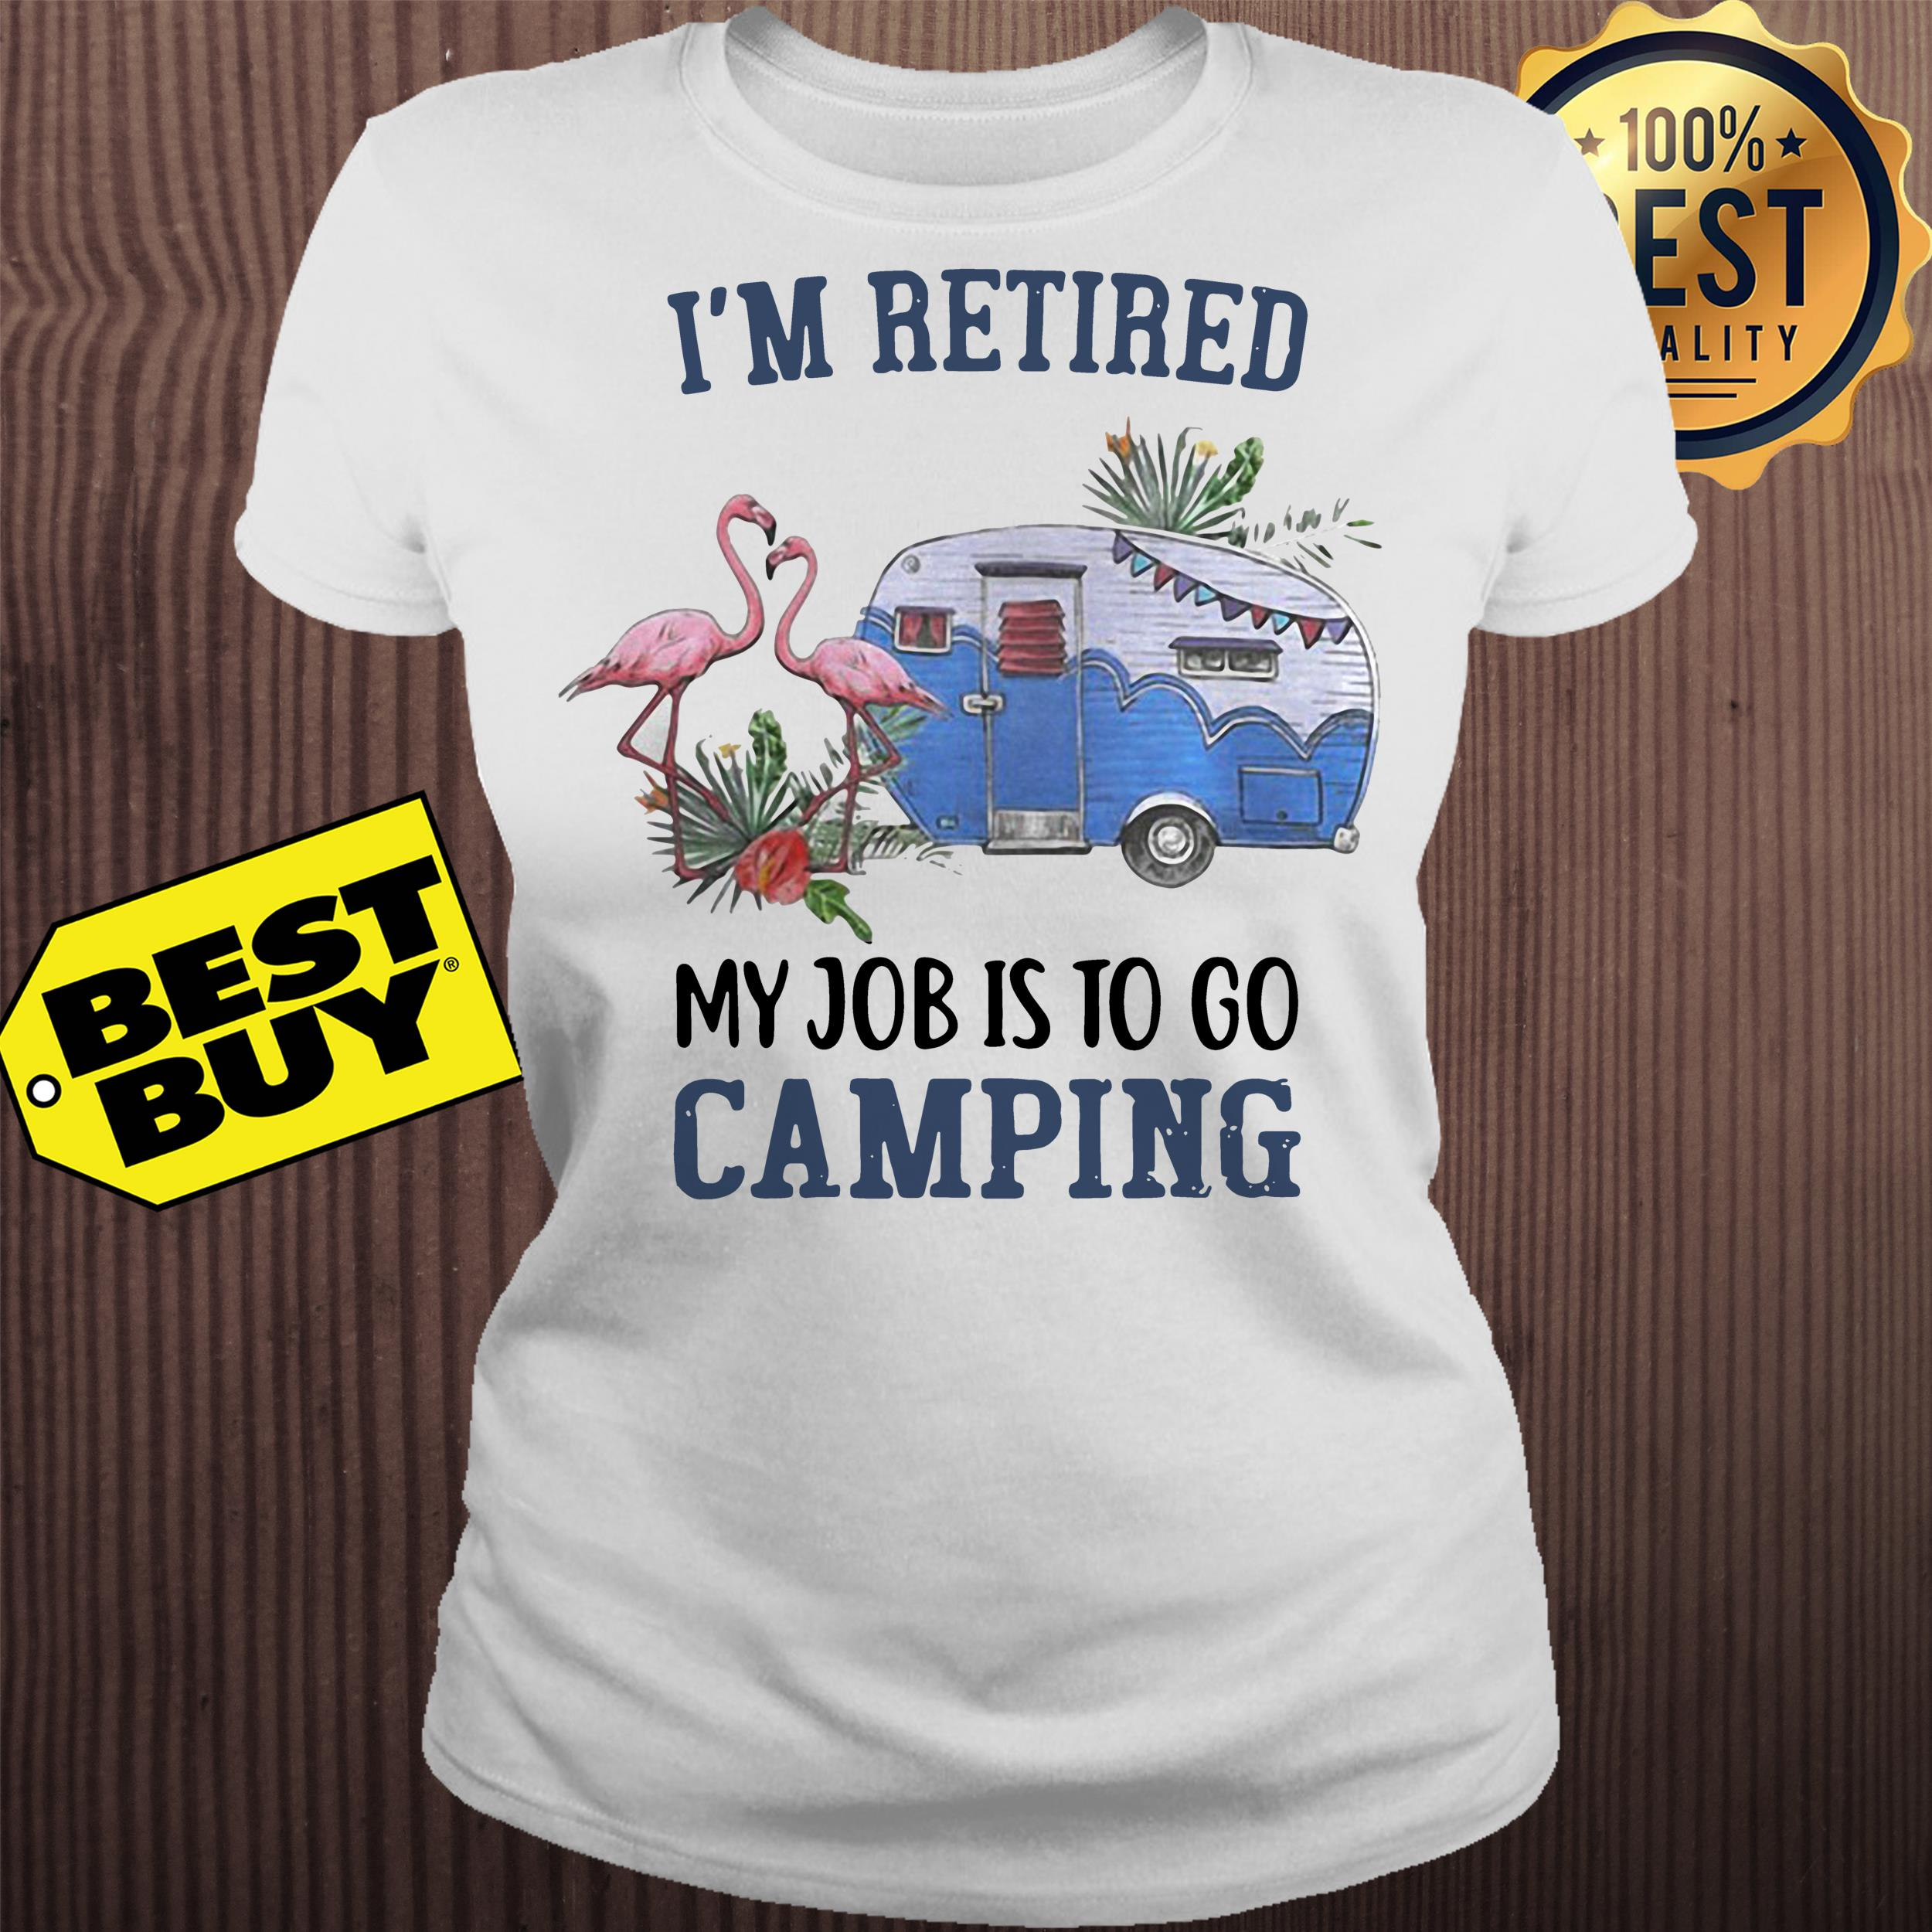 flamingo im retired my job is to go camping ladies tee - Flamingo I'm retired my job is to go camping shirt